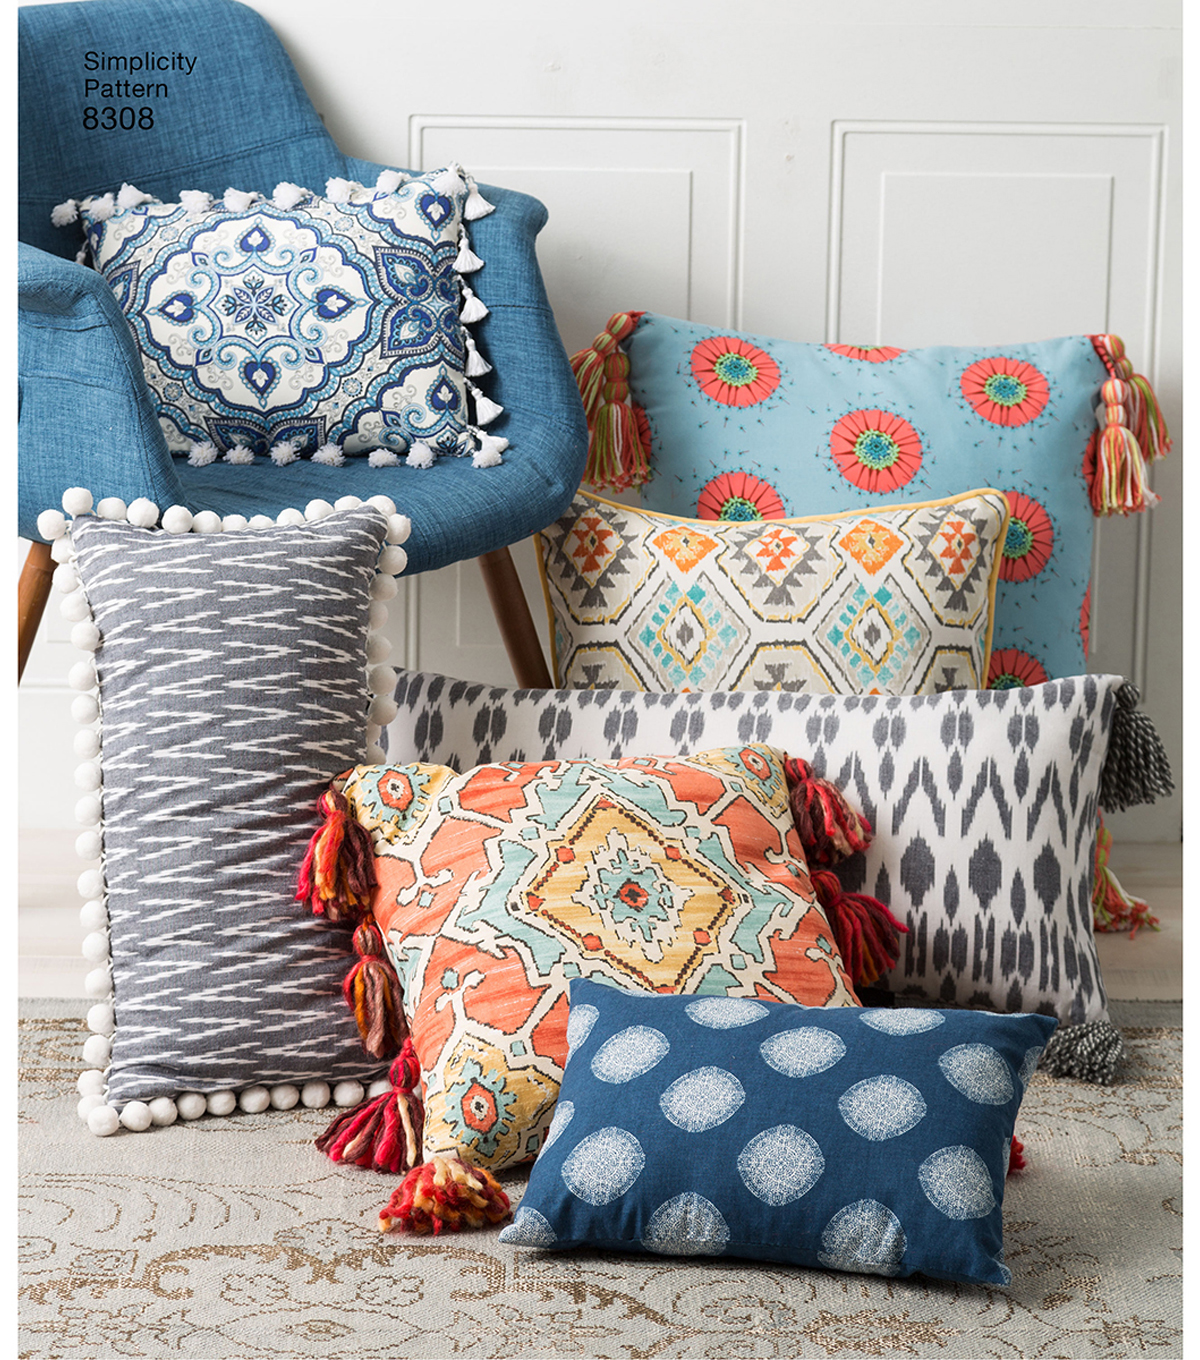 Simplicity Pattern 8308 Pillows